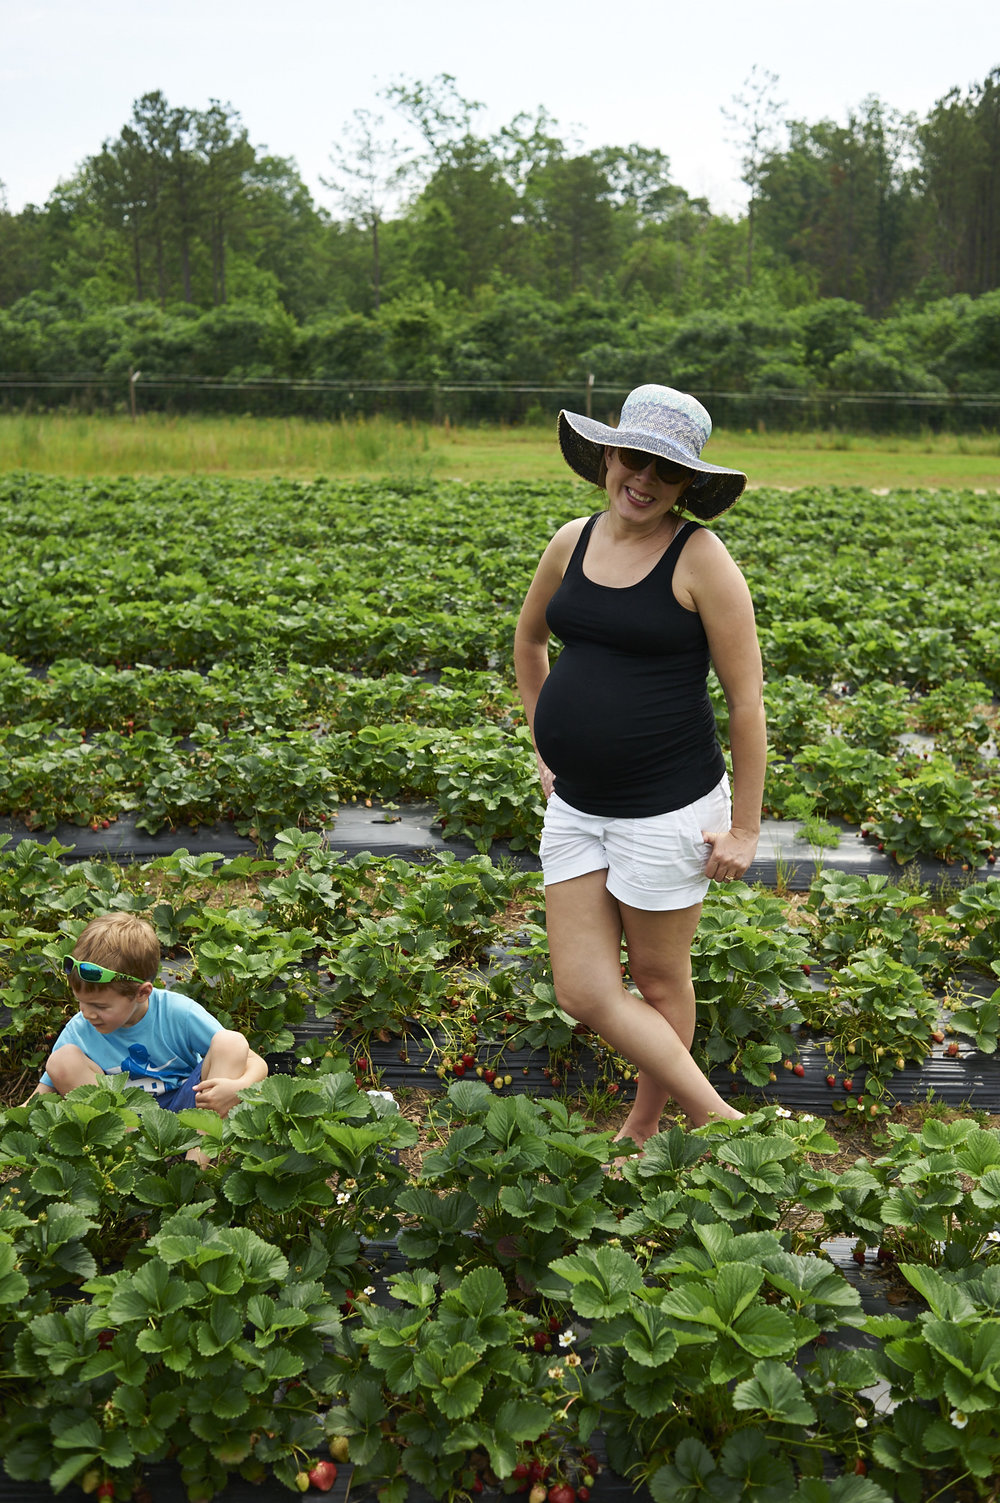 strawberry picking, lccl farm, rome, GA, family, lifestyle photography, its the everyday, pregnancy, 35 weeks